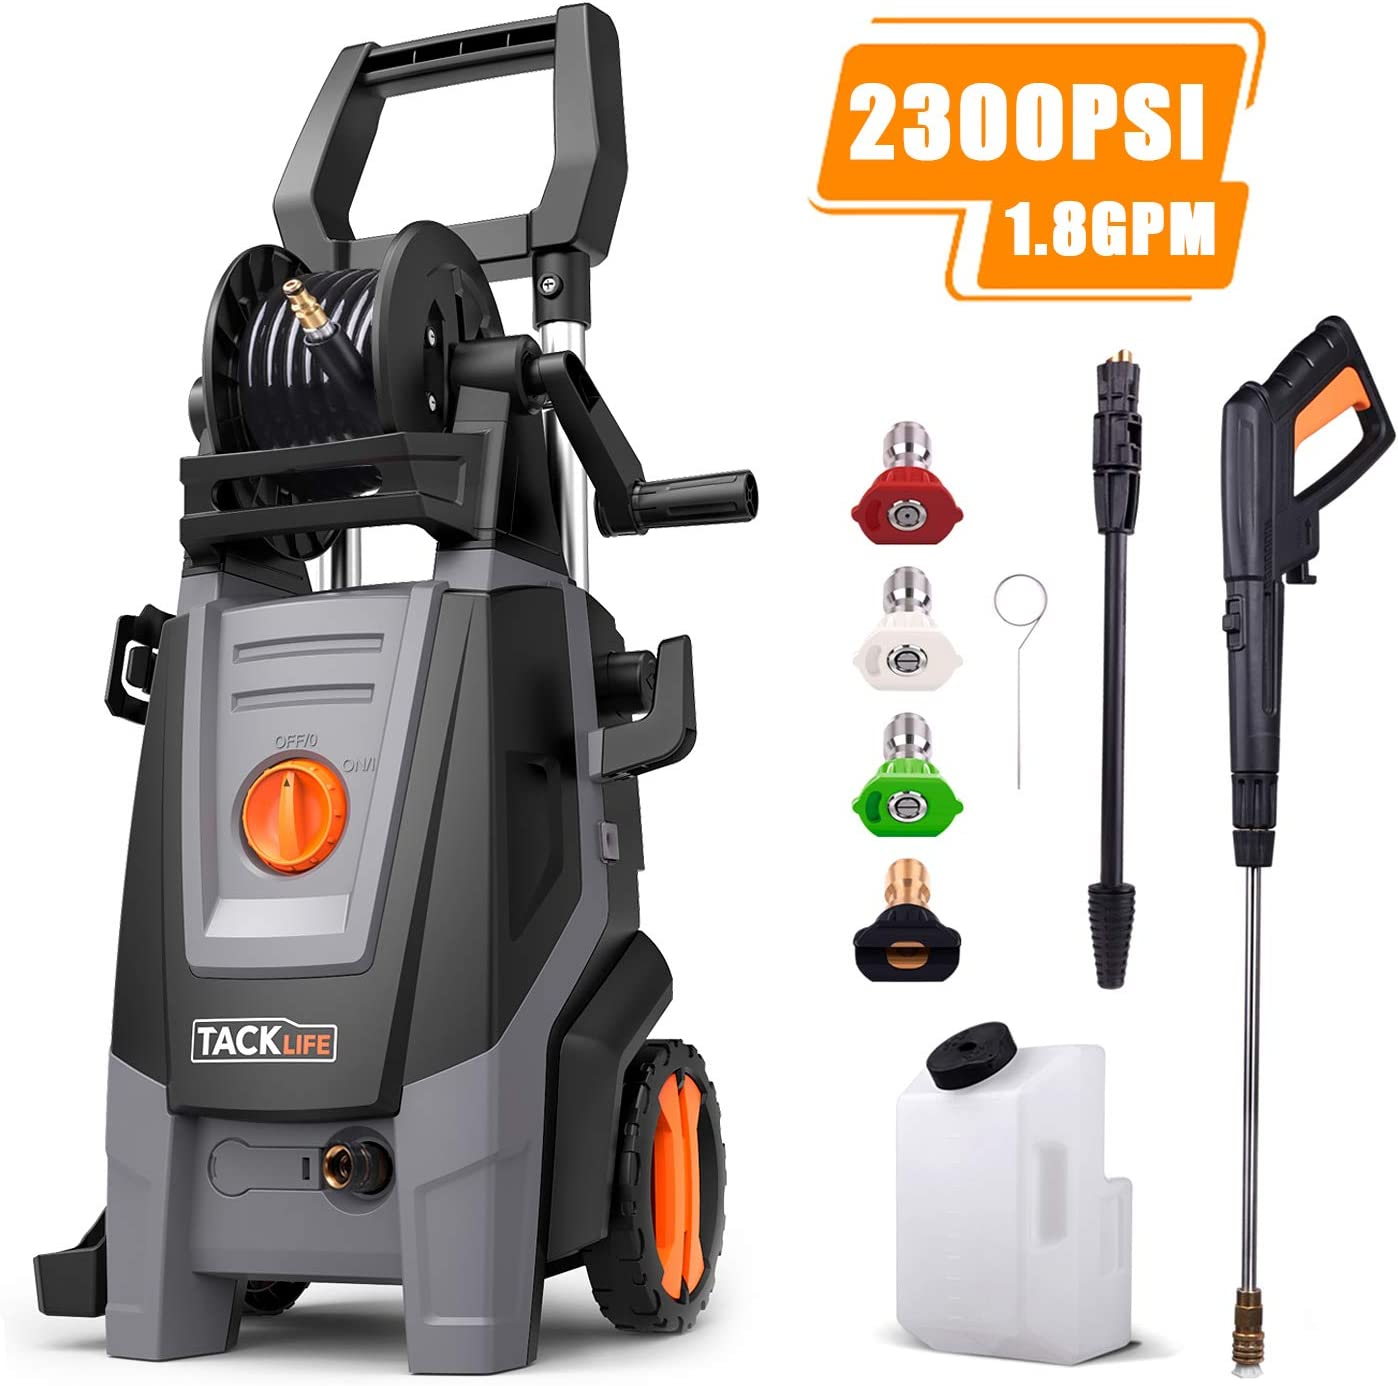 TACKLIFE 2300 PSI Electric Pressure Washer 1.8 GPM with Detergent Tank, 4 Nozzles and Automatic Stop Function, 360 Easy to Remove Dirt, Great for Cleaning Car, Yard, Garden, Barbecue